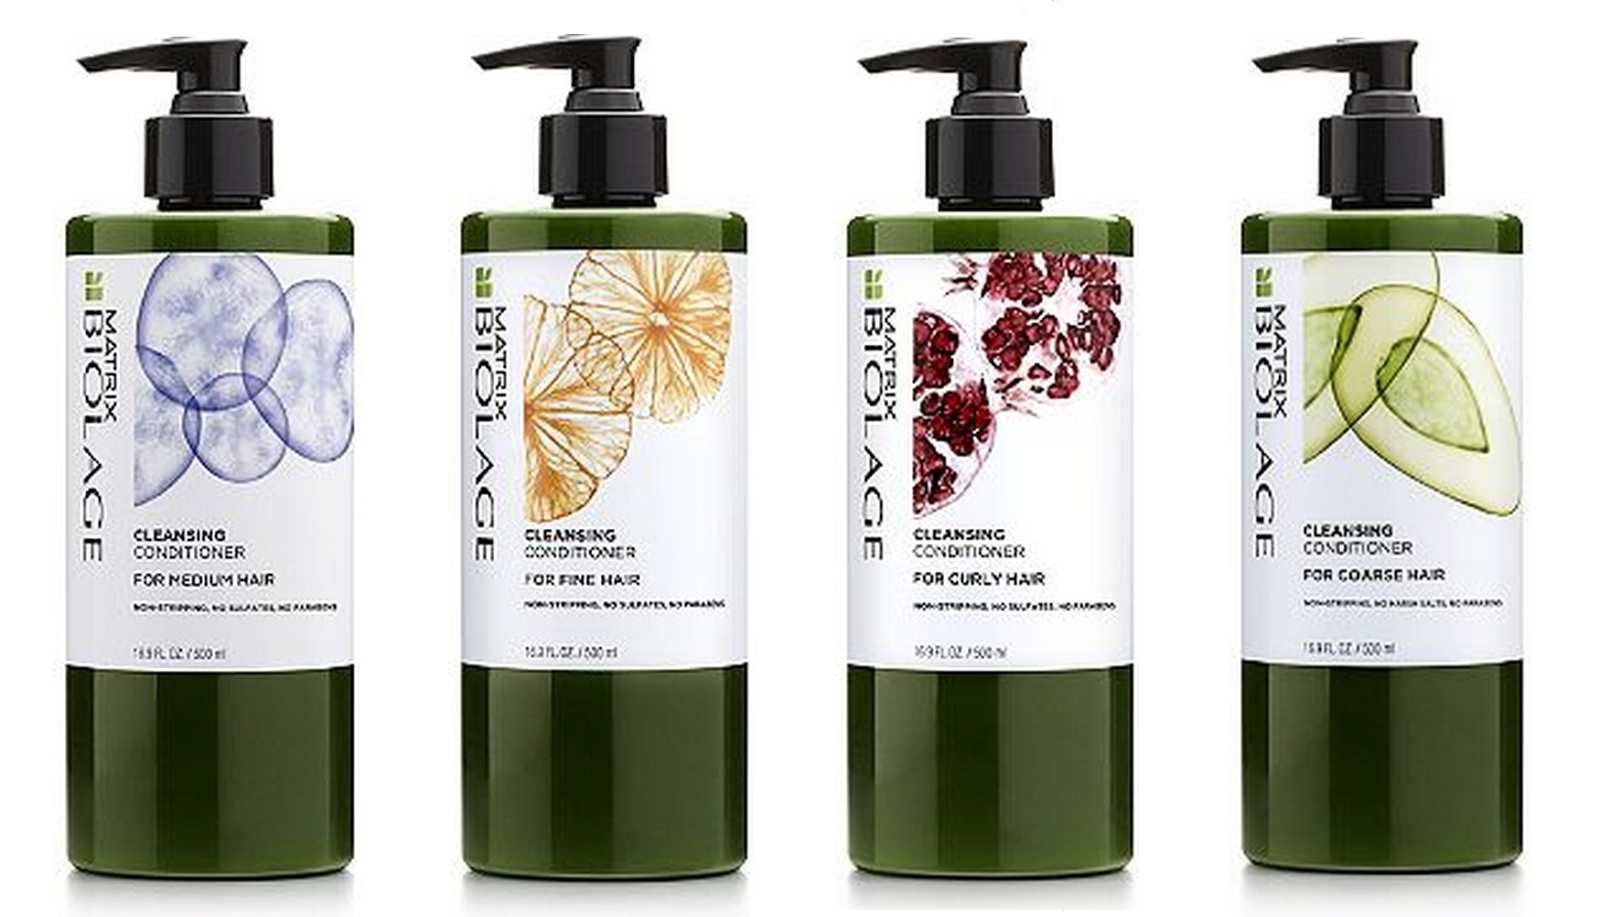 New Biolage Cleansing Conditioners At Ulta The Budget